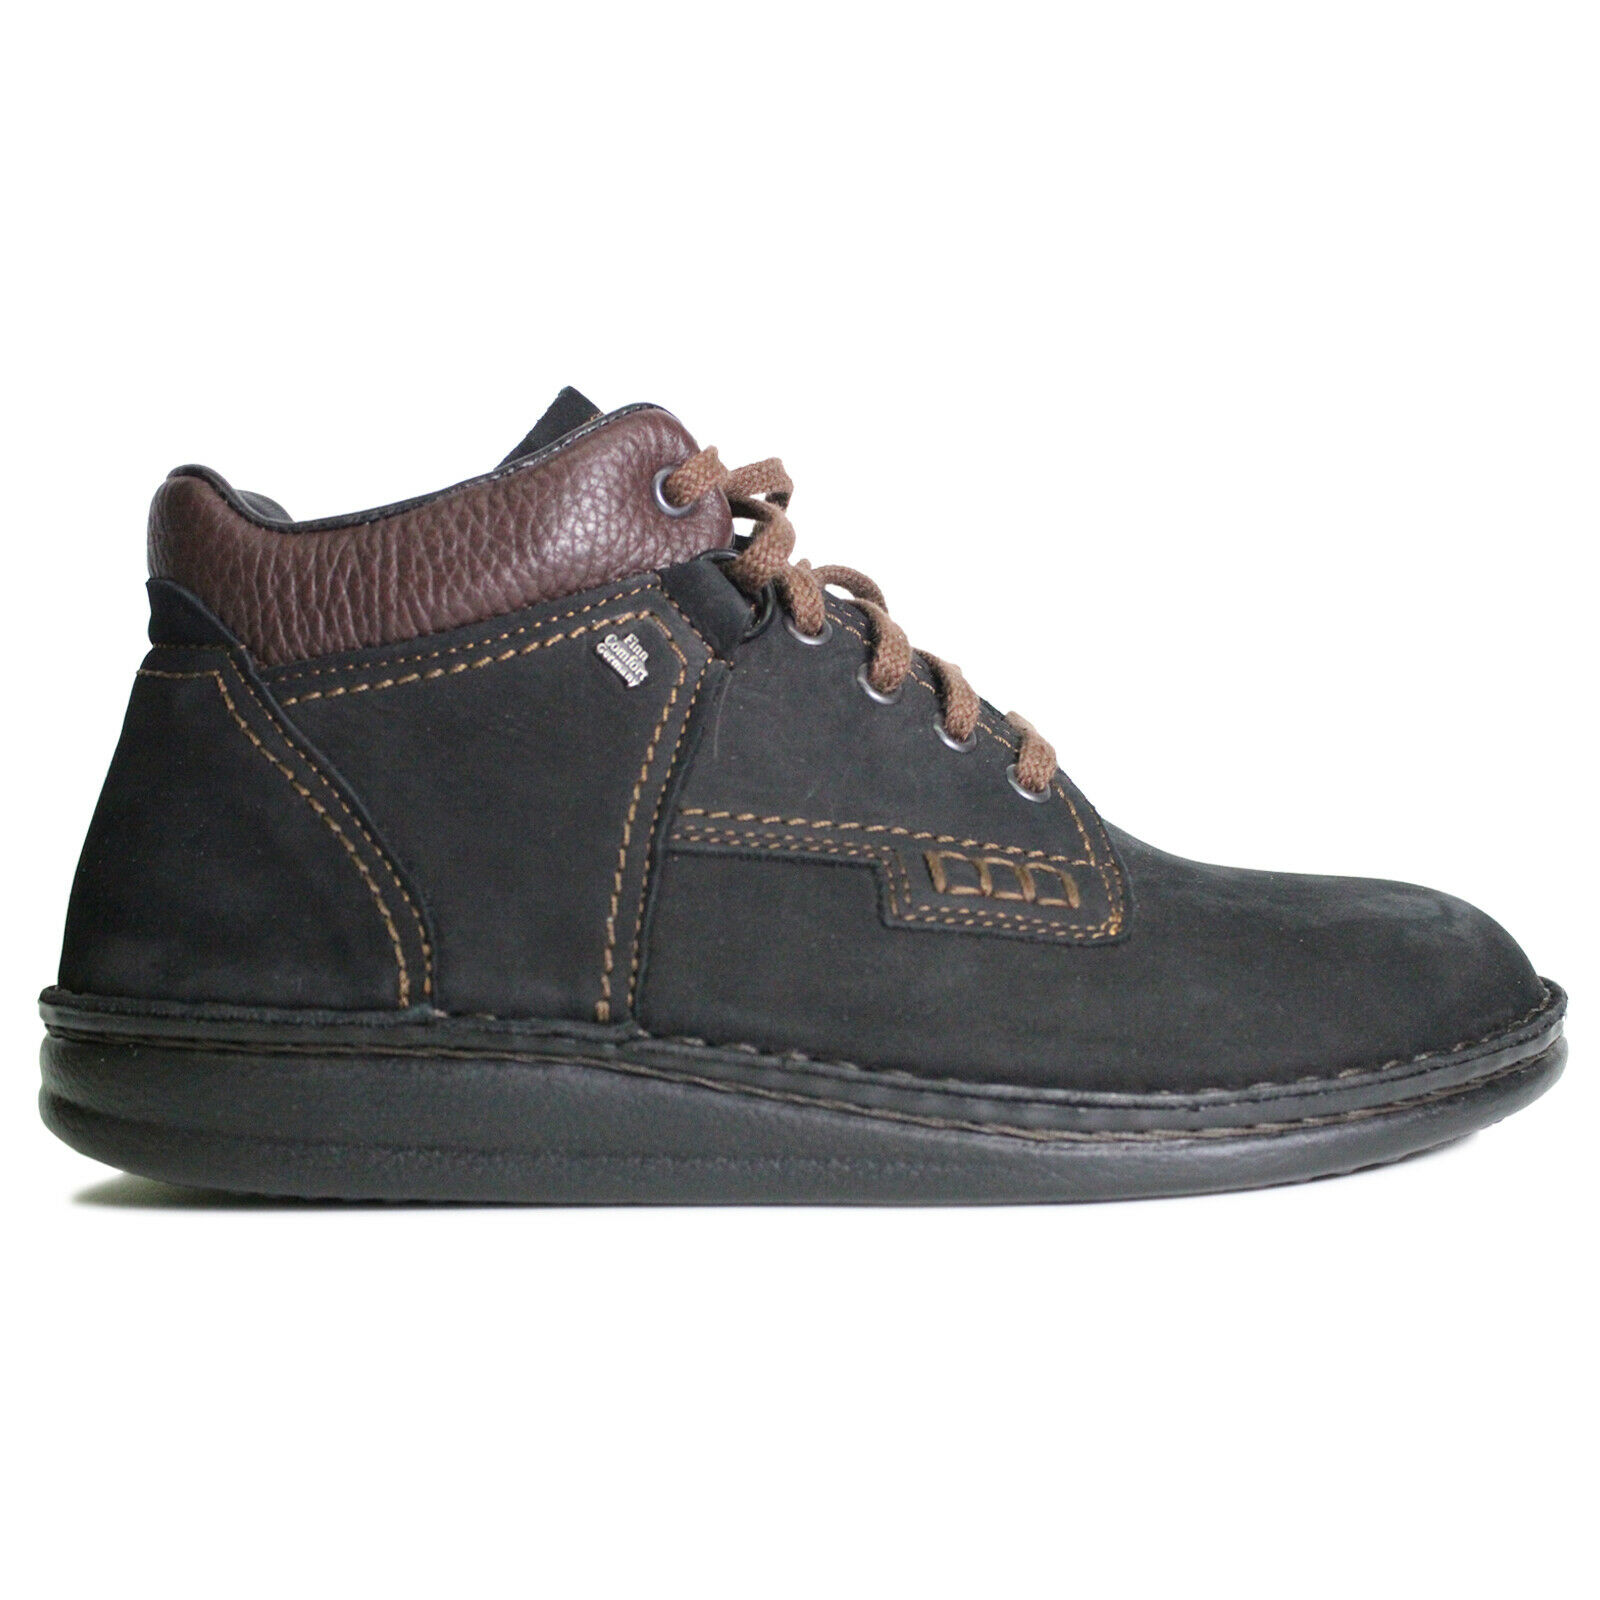 Finn Comfort Unisex Stiefel Linz Casual Lace-Up Ankle Nubuck Leather